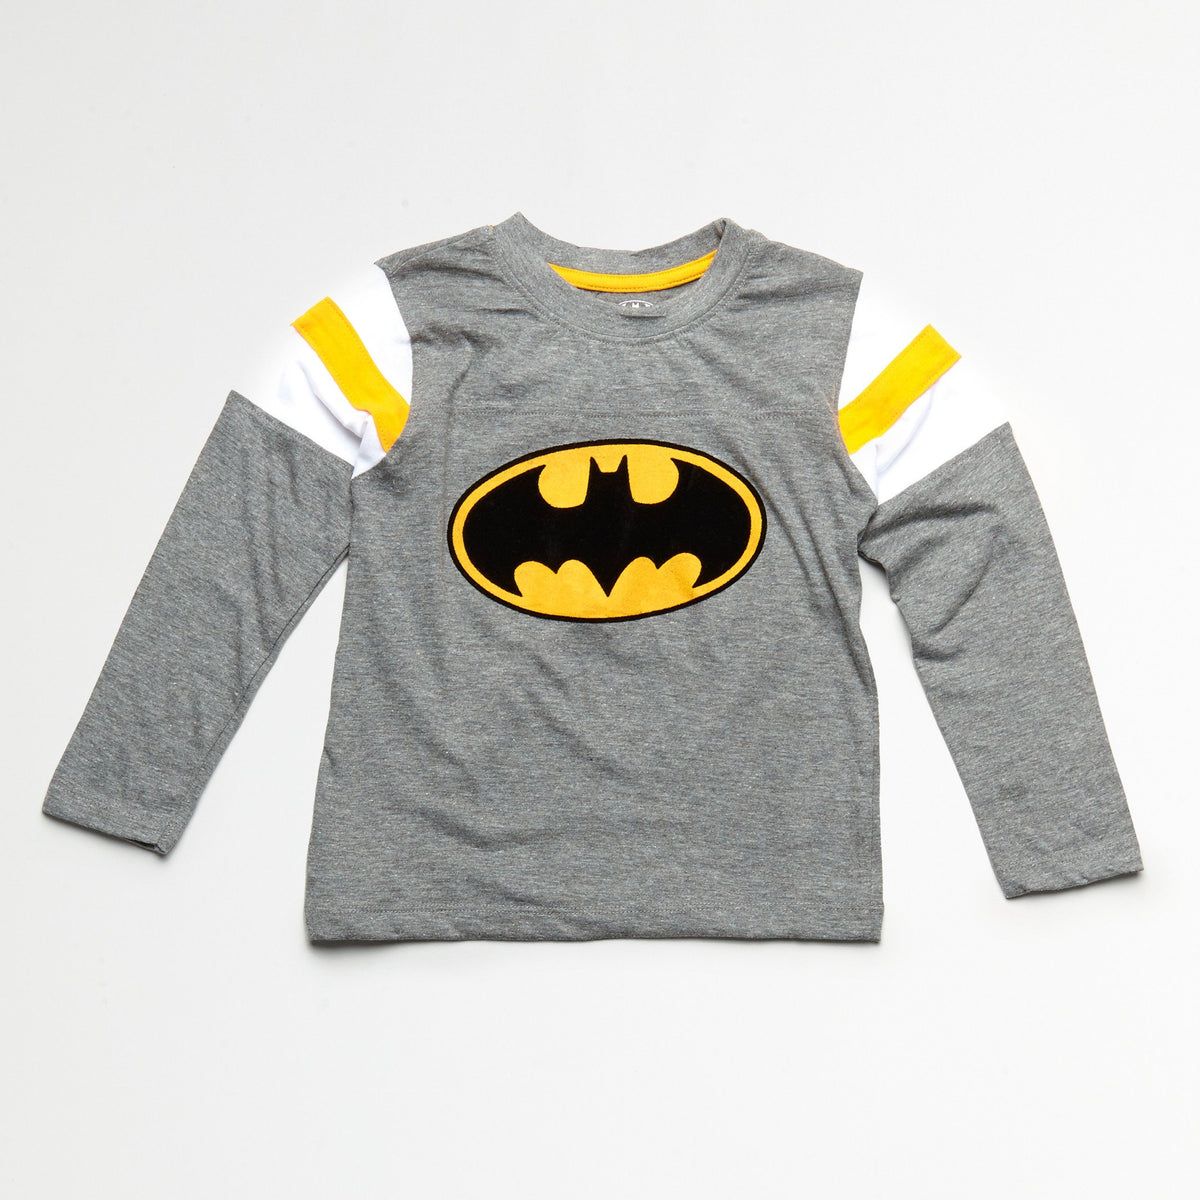 Batman Black/Yellow Tee & Jogger Set